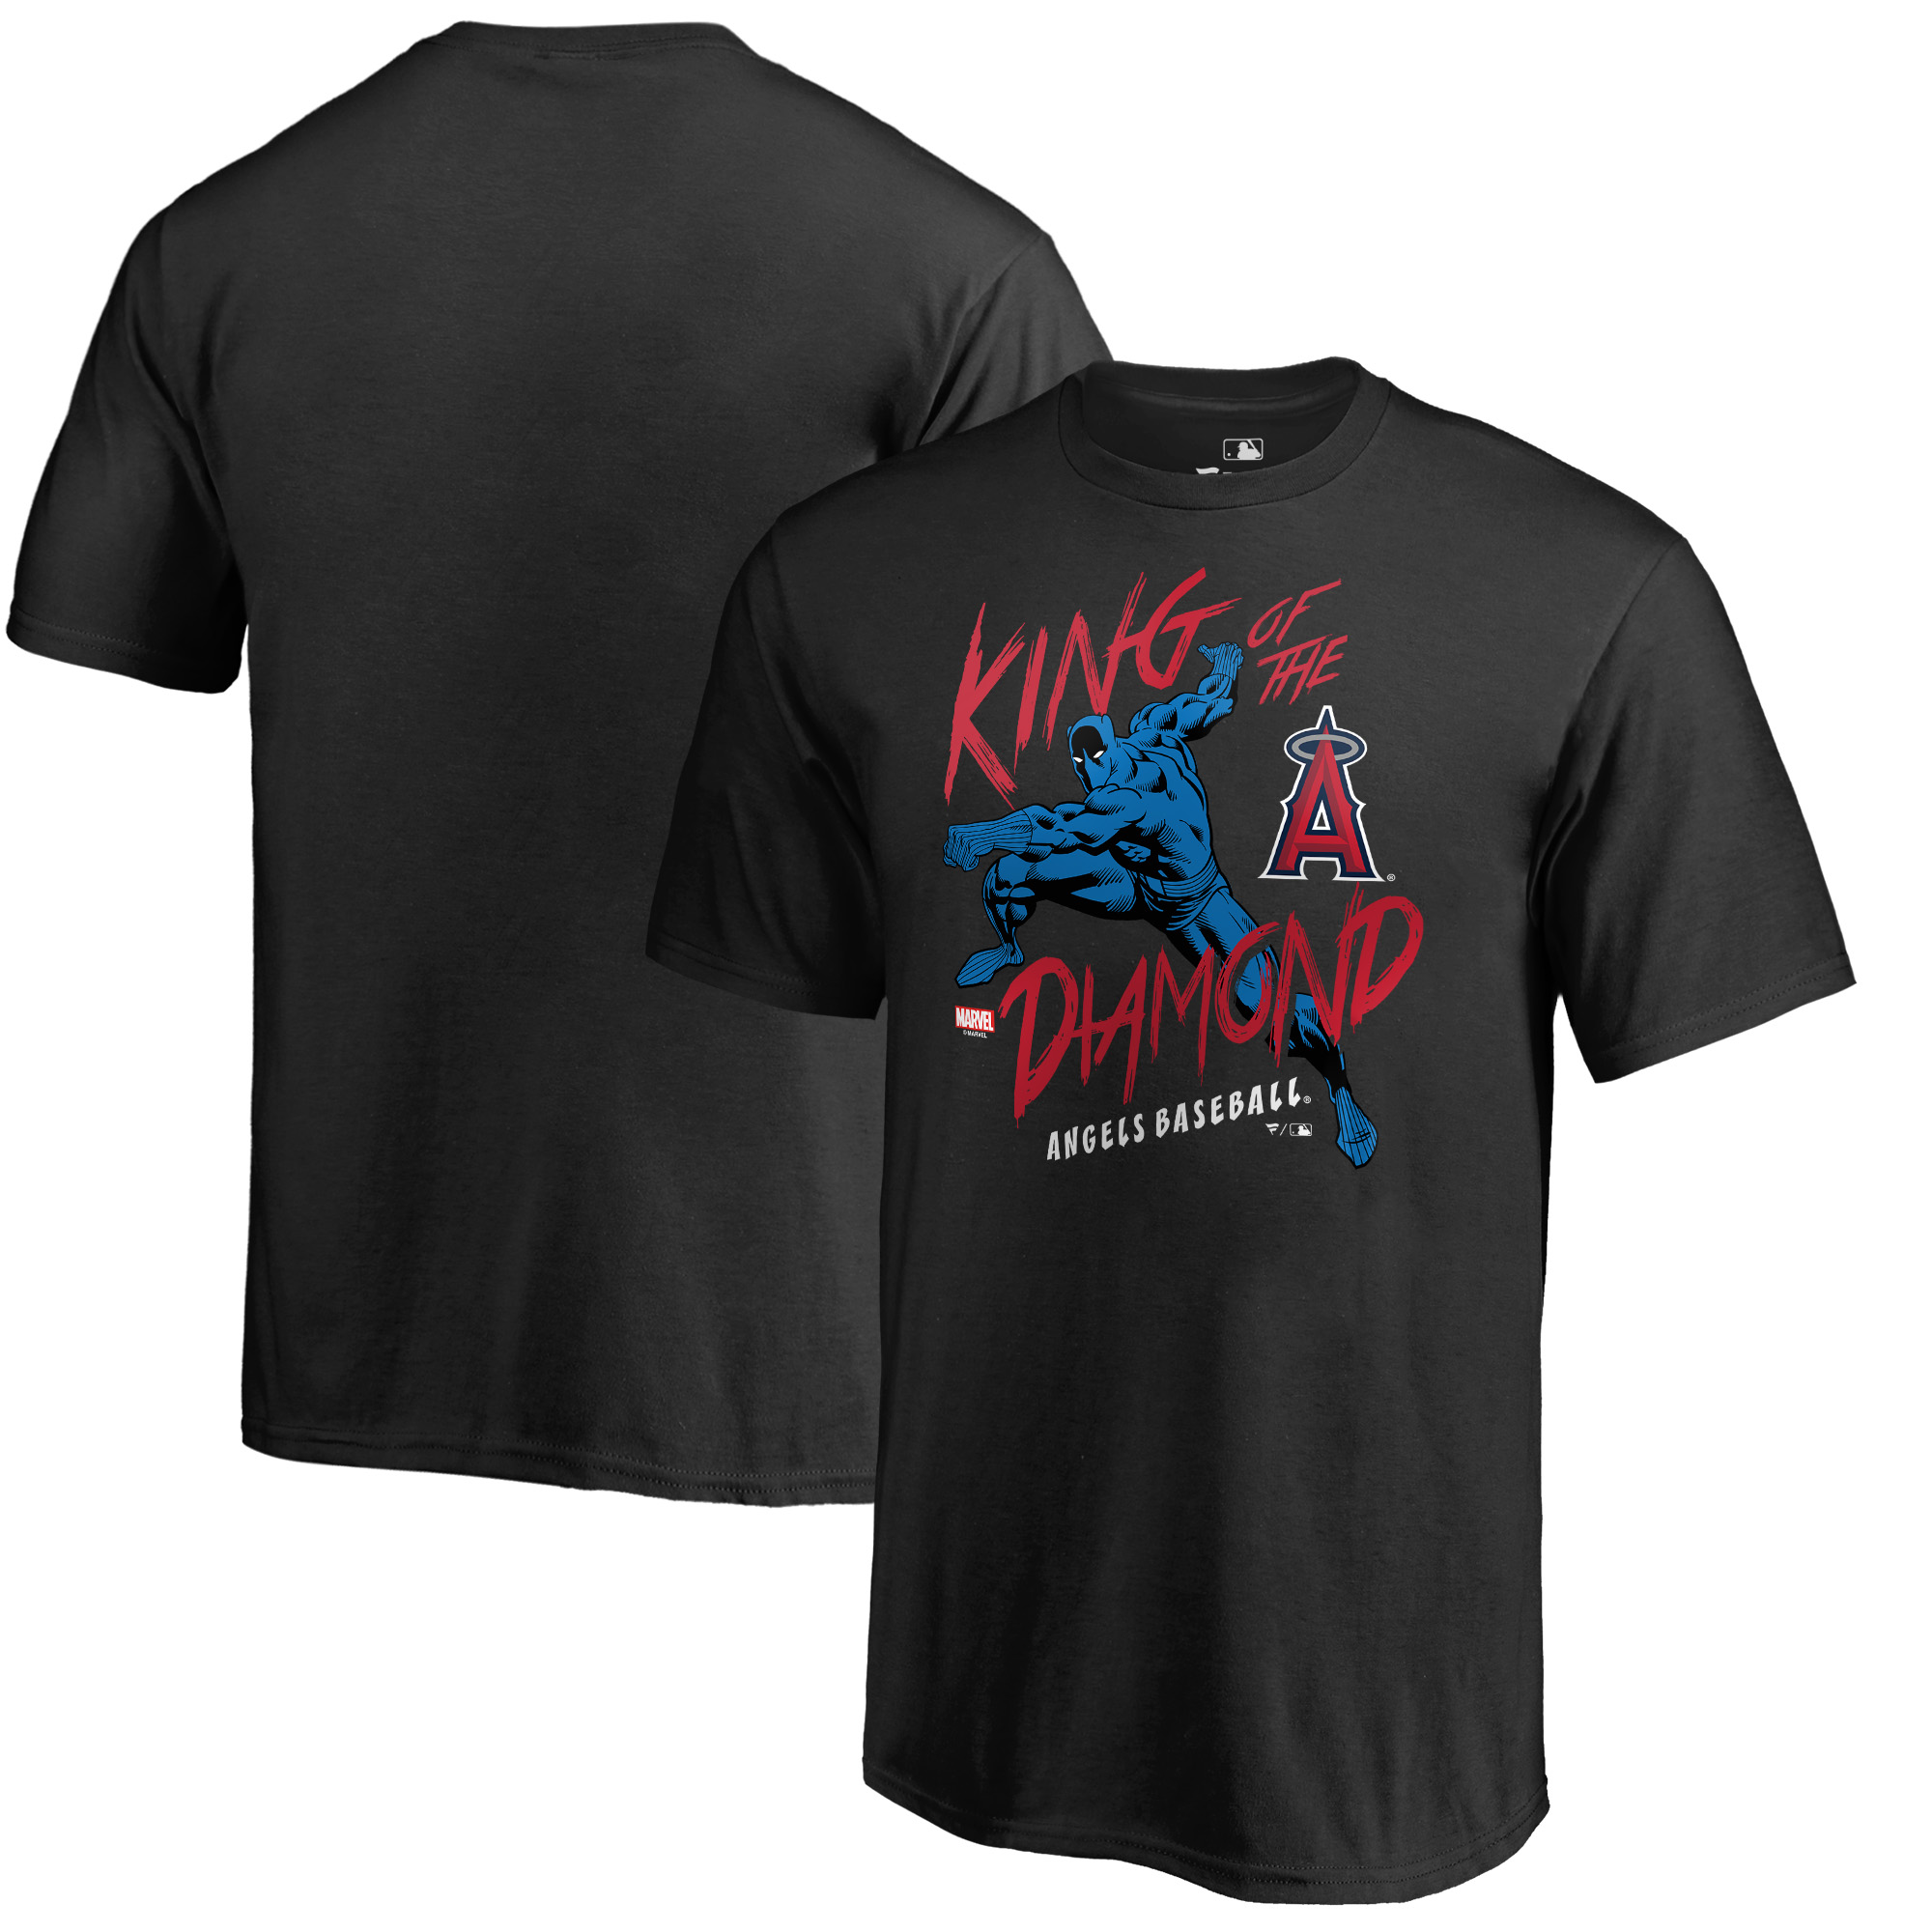 Los Angeles Angels Fanatics Branded Youth MLB Marvel Black Panther King of the Diamond T-Shirt - Black